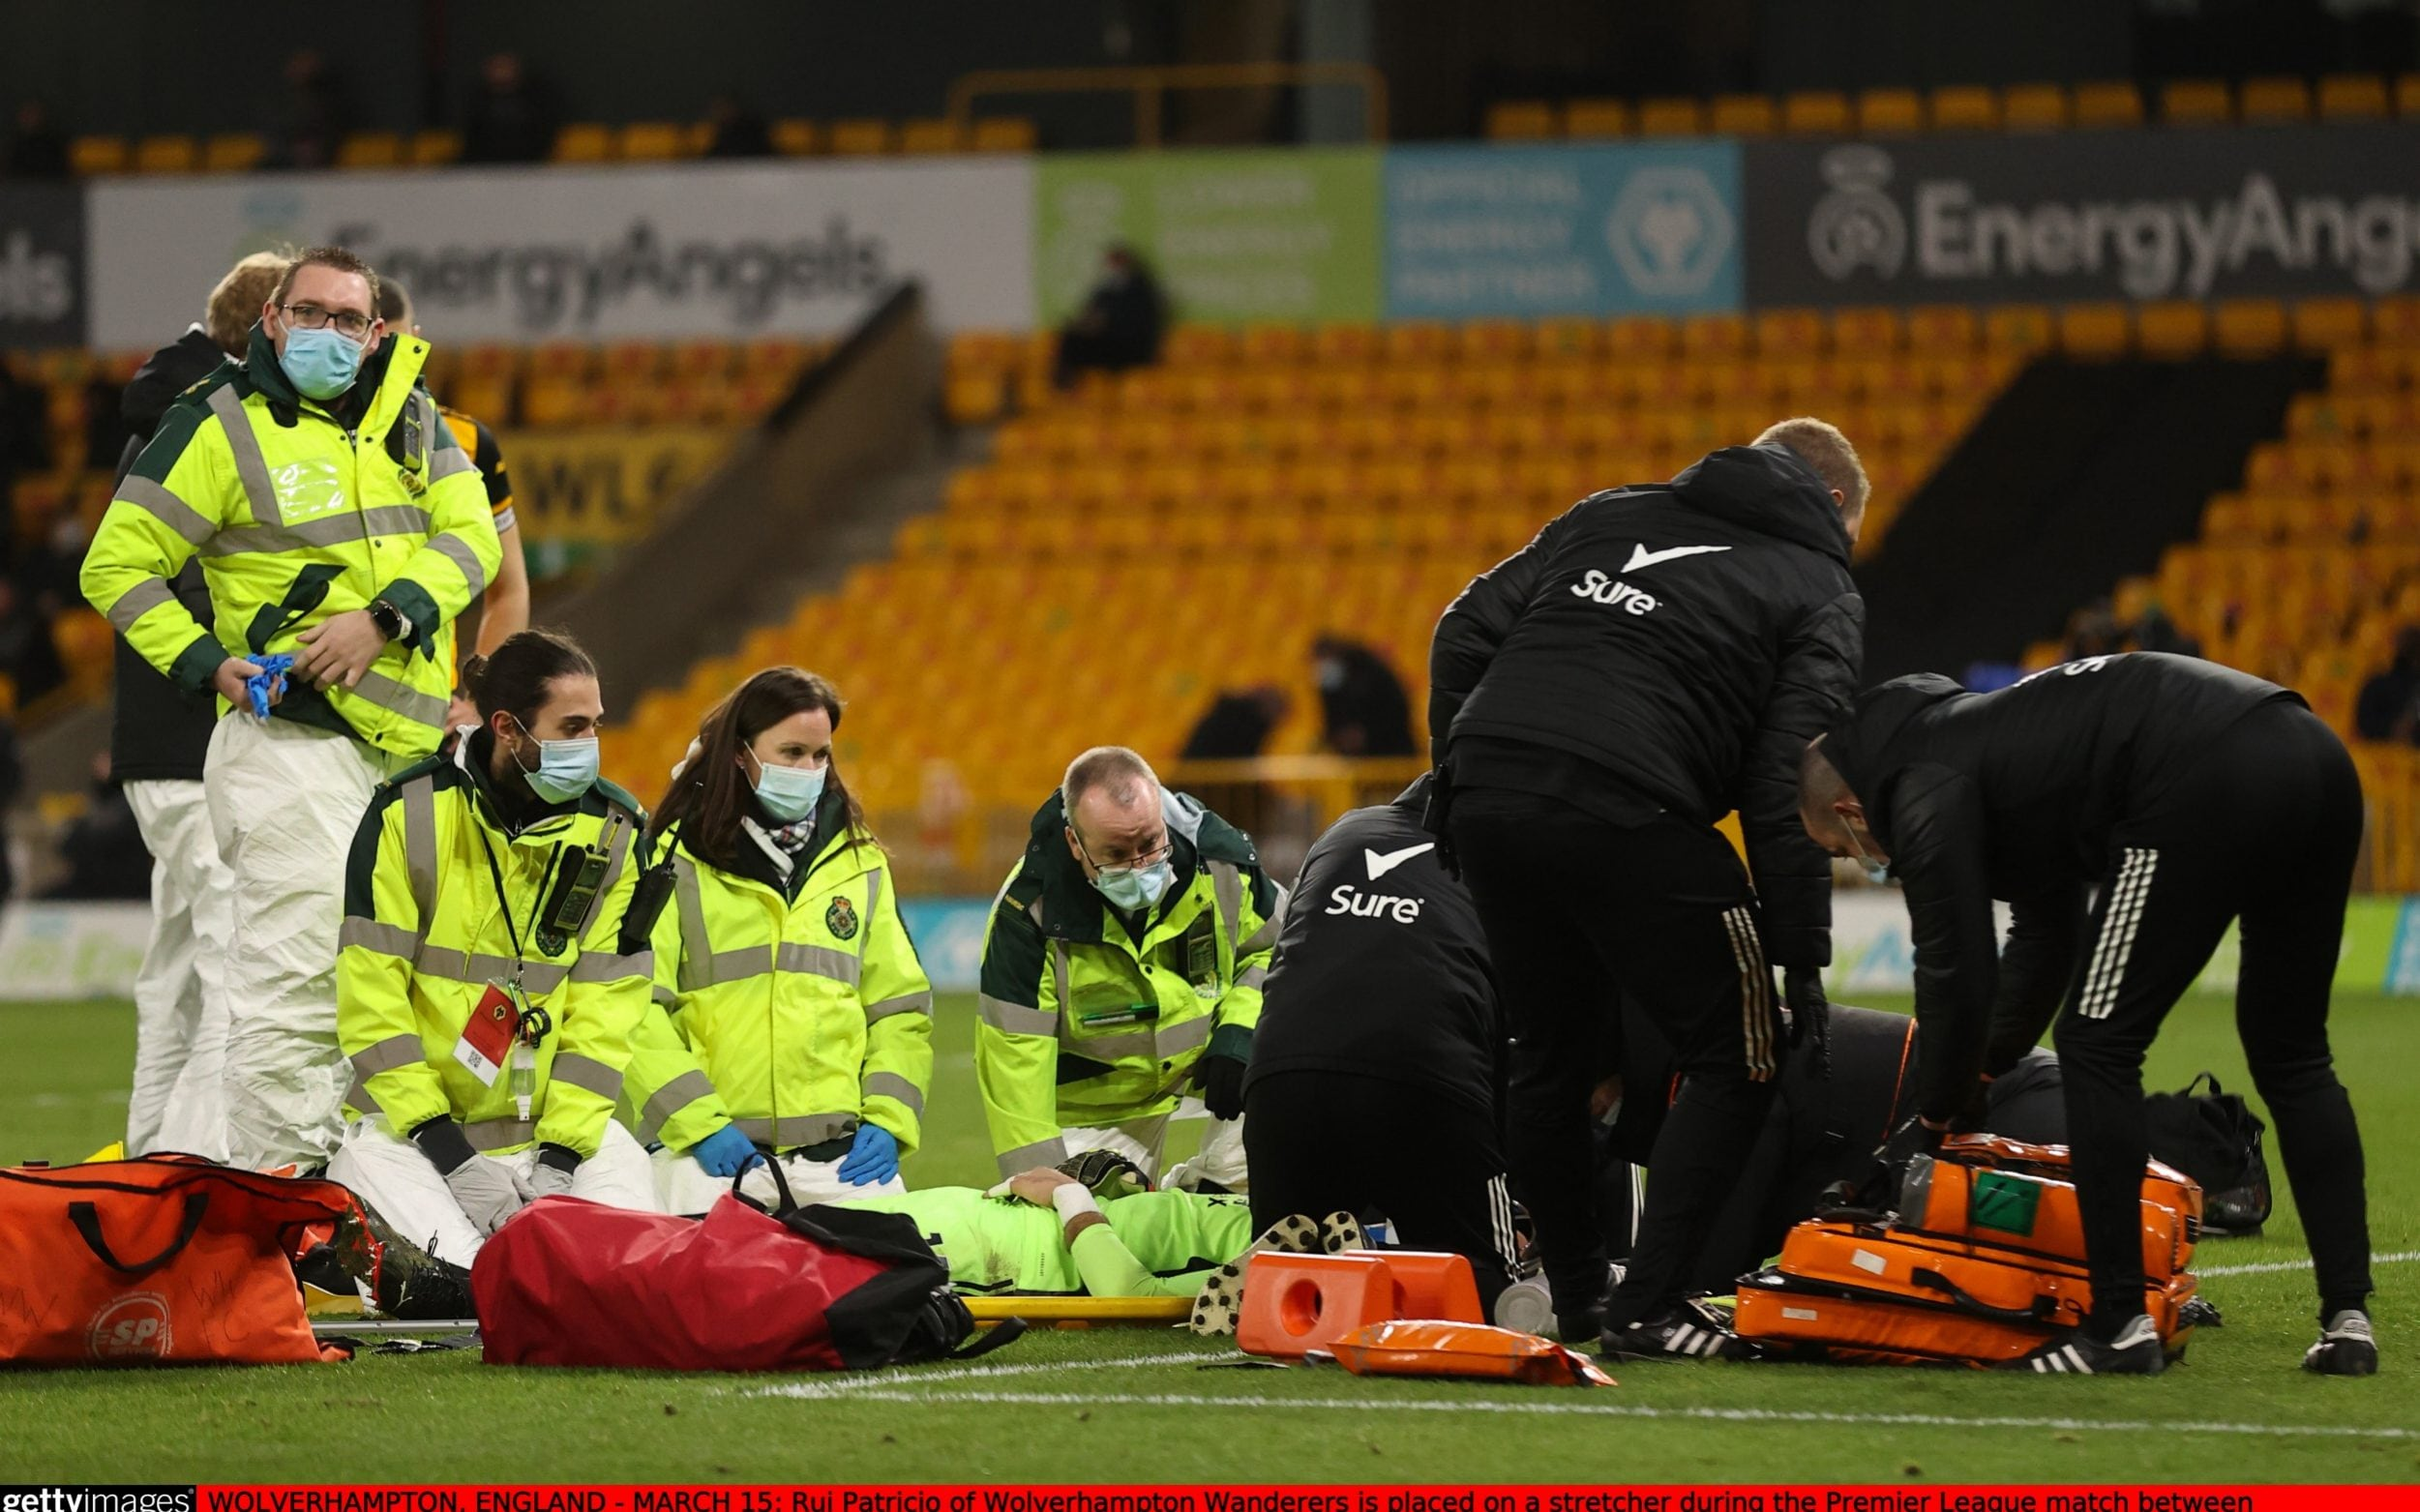 Rui Patricio of Wolverhampton Wanderers is placed on a stretcher